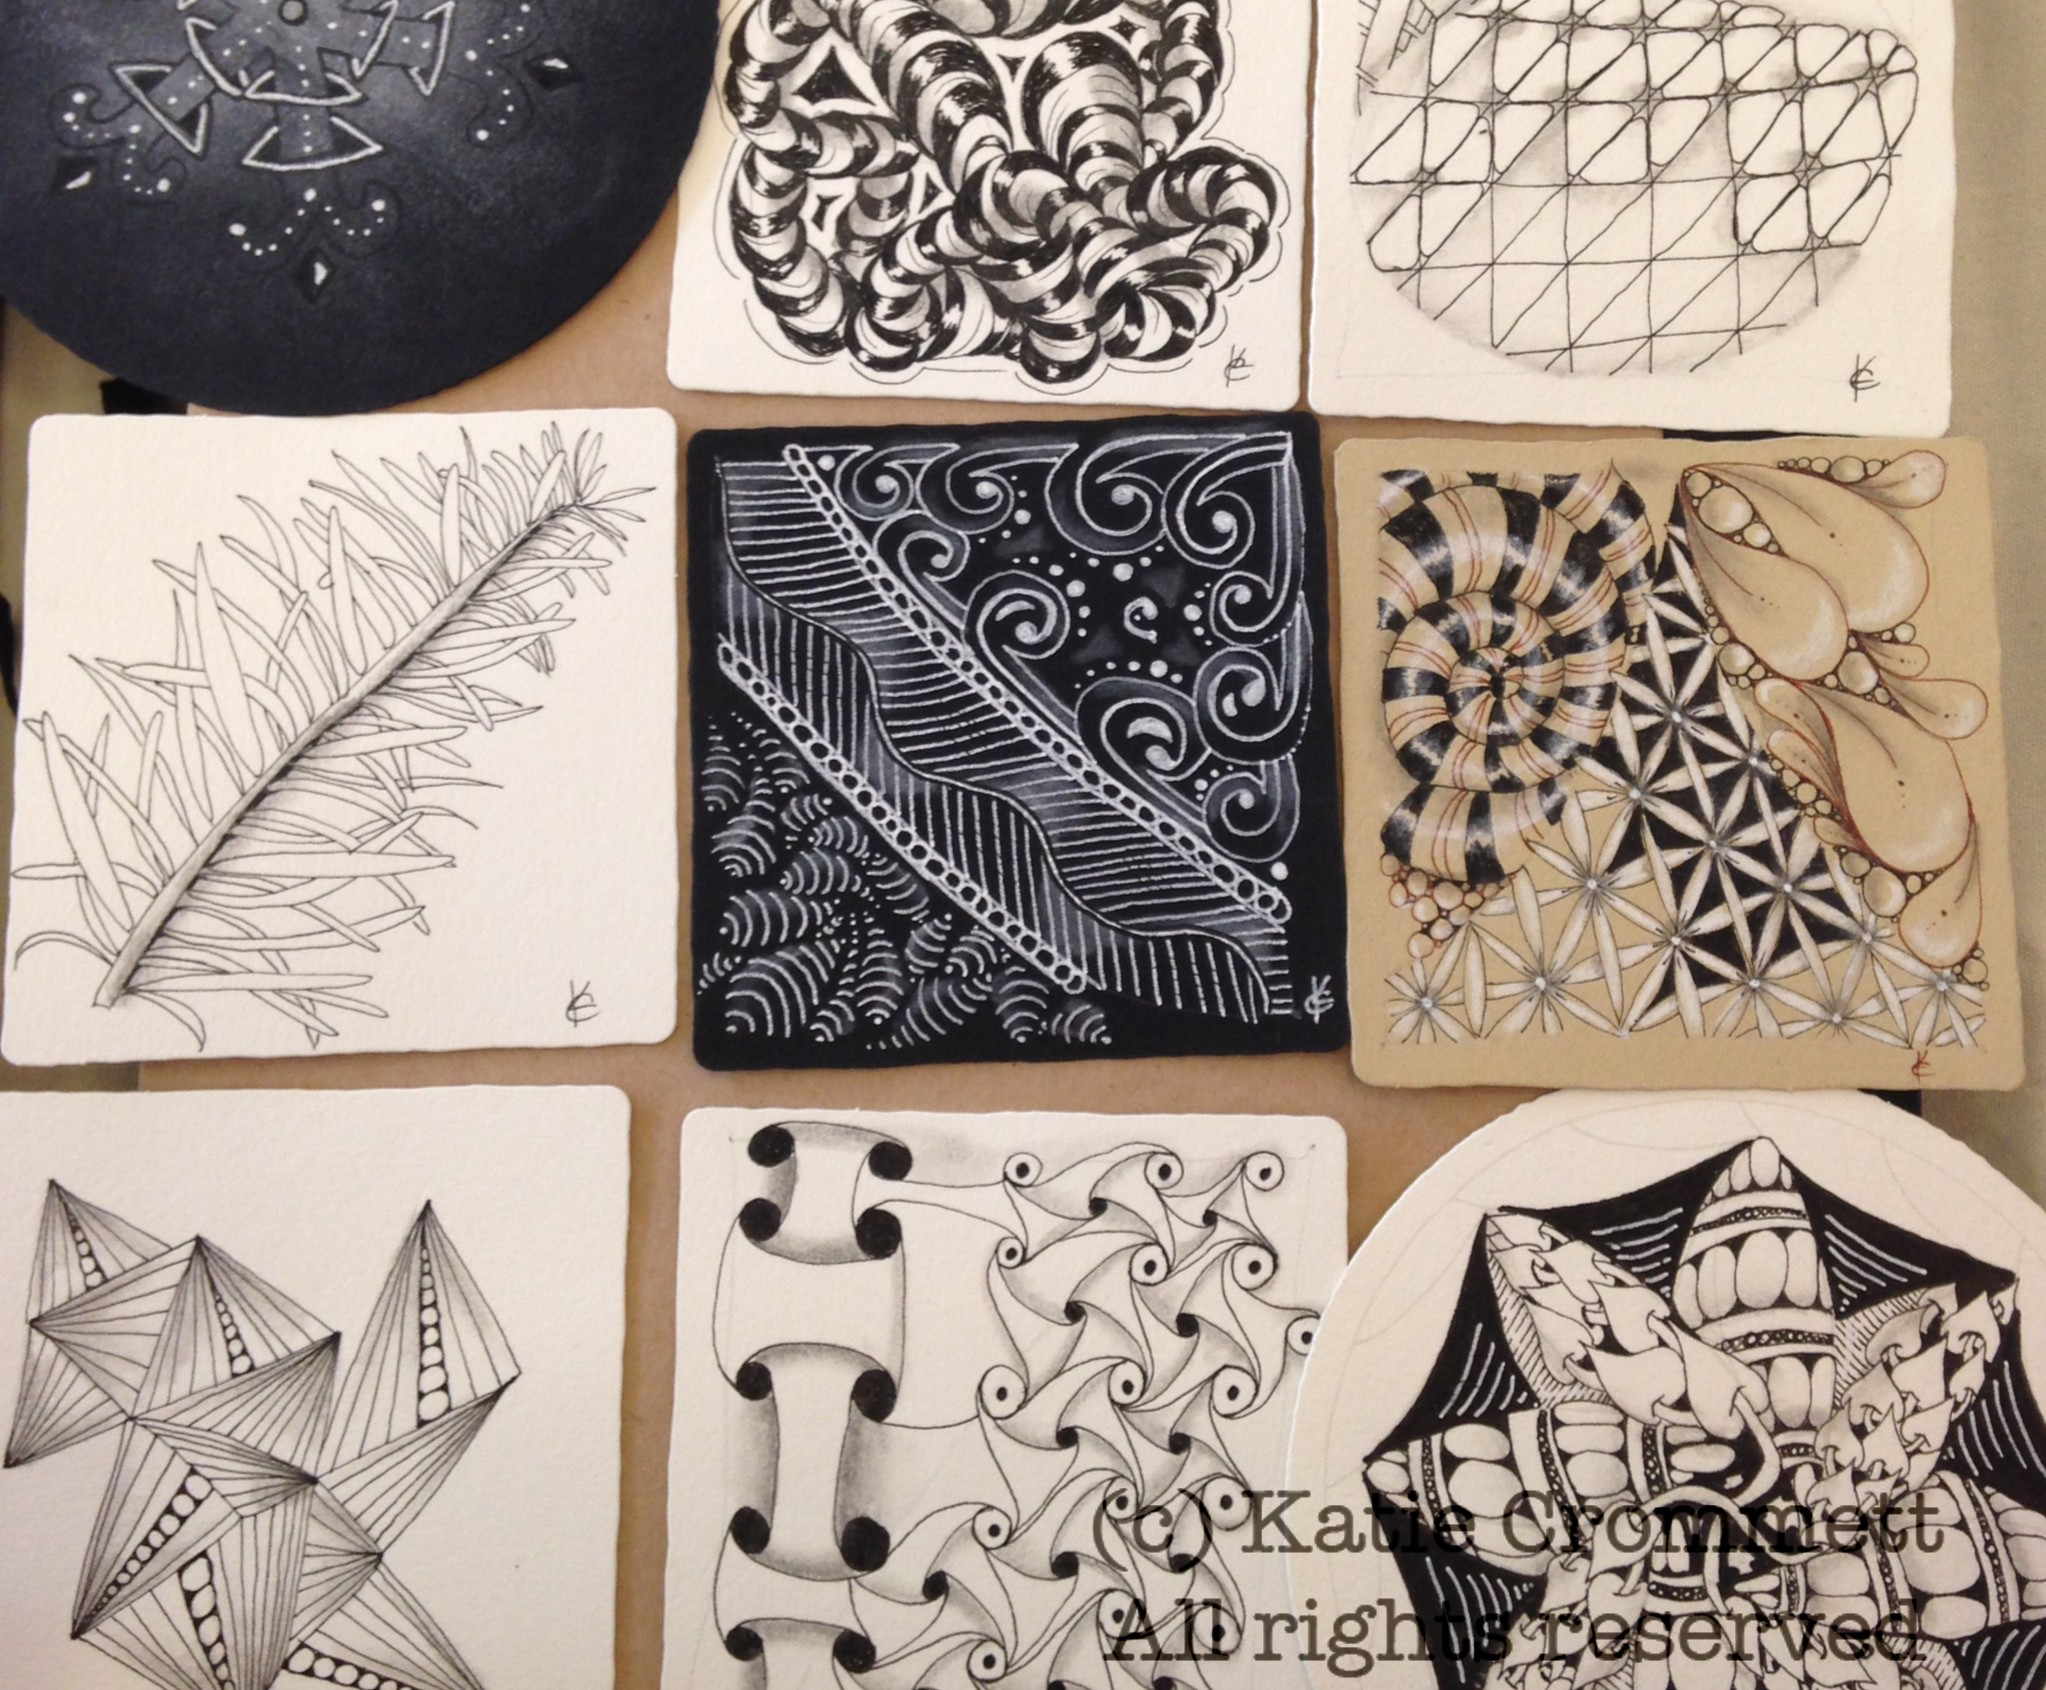 About Zentangle, offered by Katie